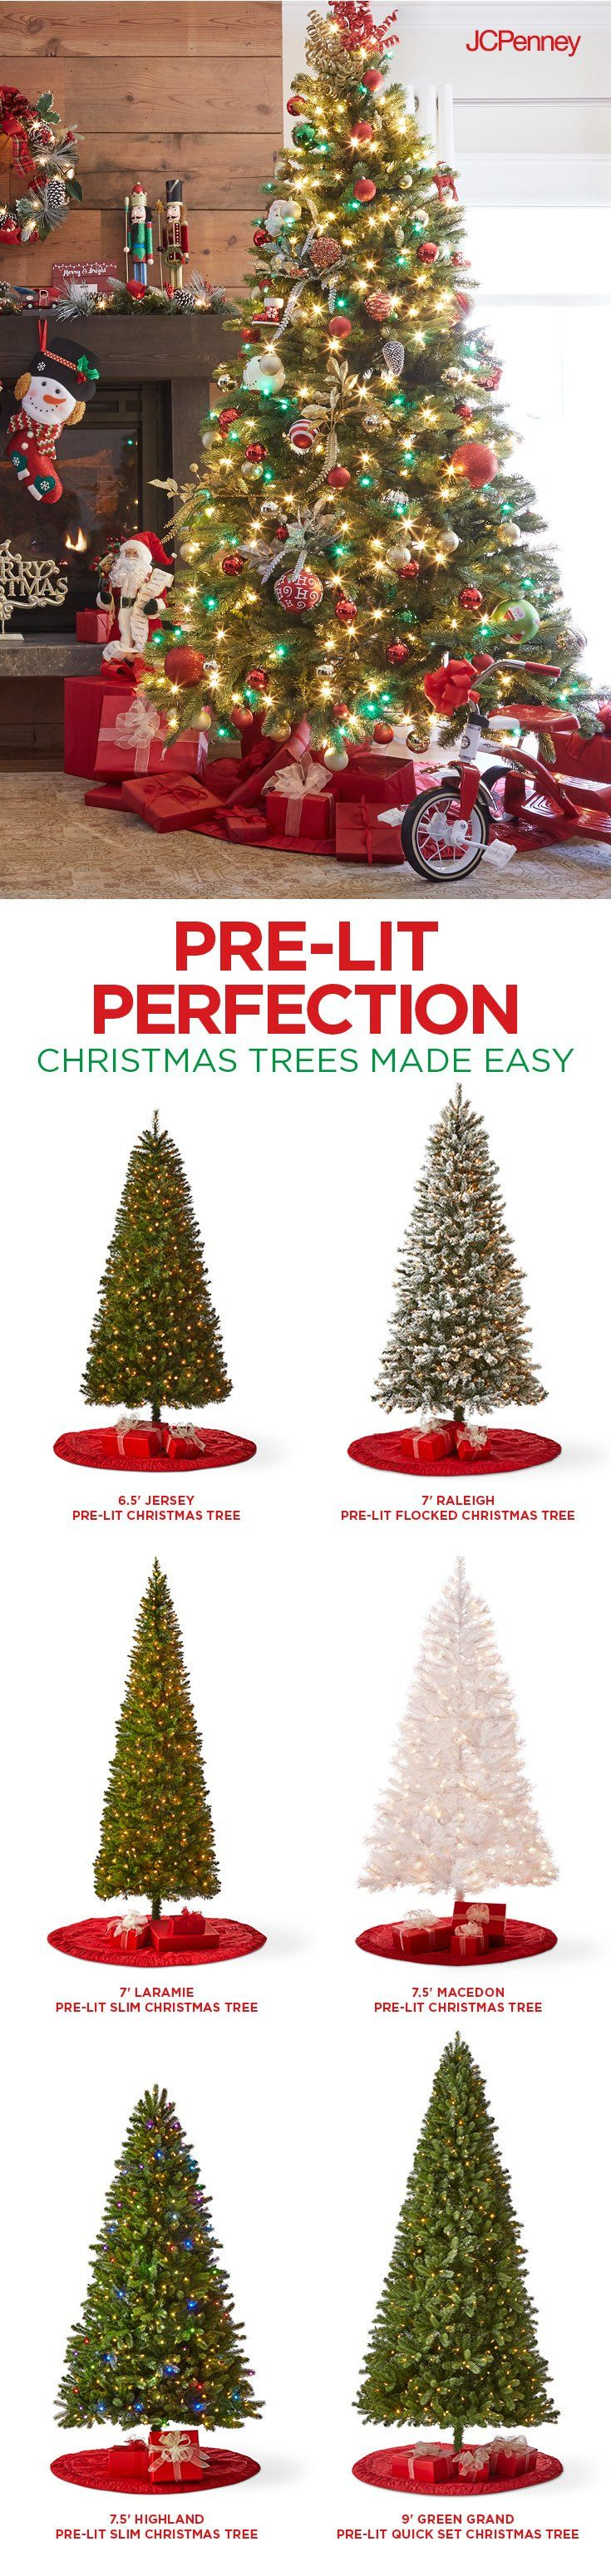 Tap to Shop!// Christmas officially kicks off when trimming the tree begins. Leave more time for the decorating everyone loves when you start with an out-of-the-box-ready, pre-lit Christmas tree. Lights done, all fun.